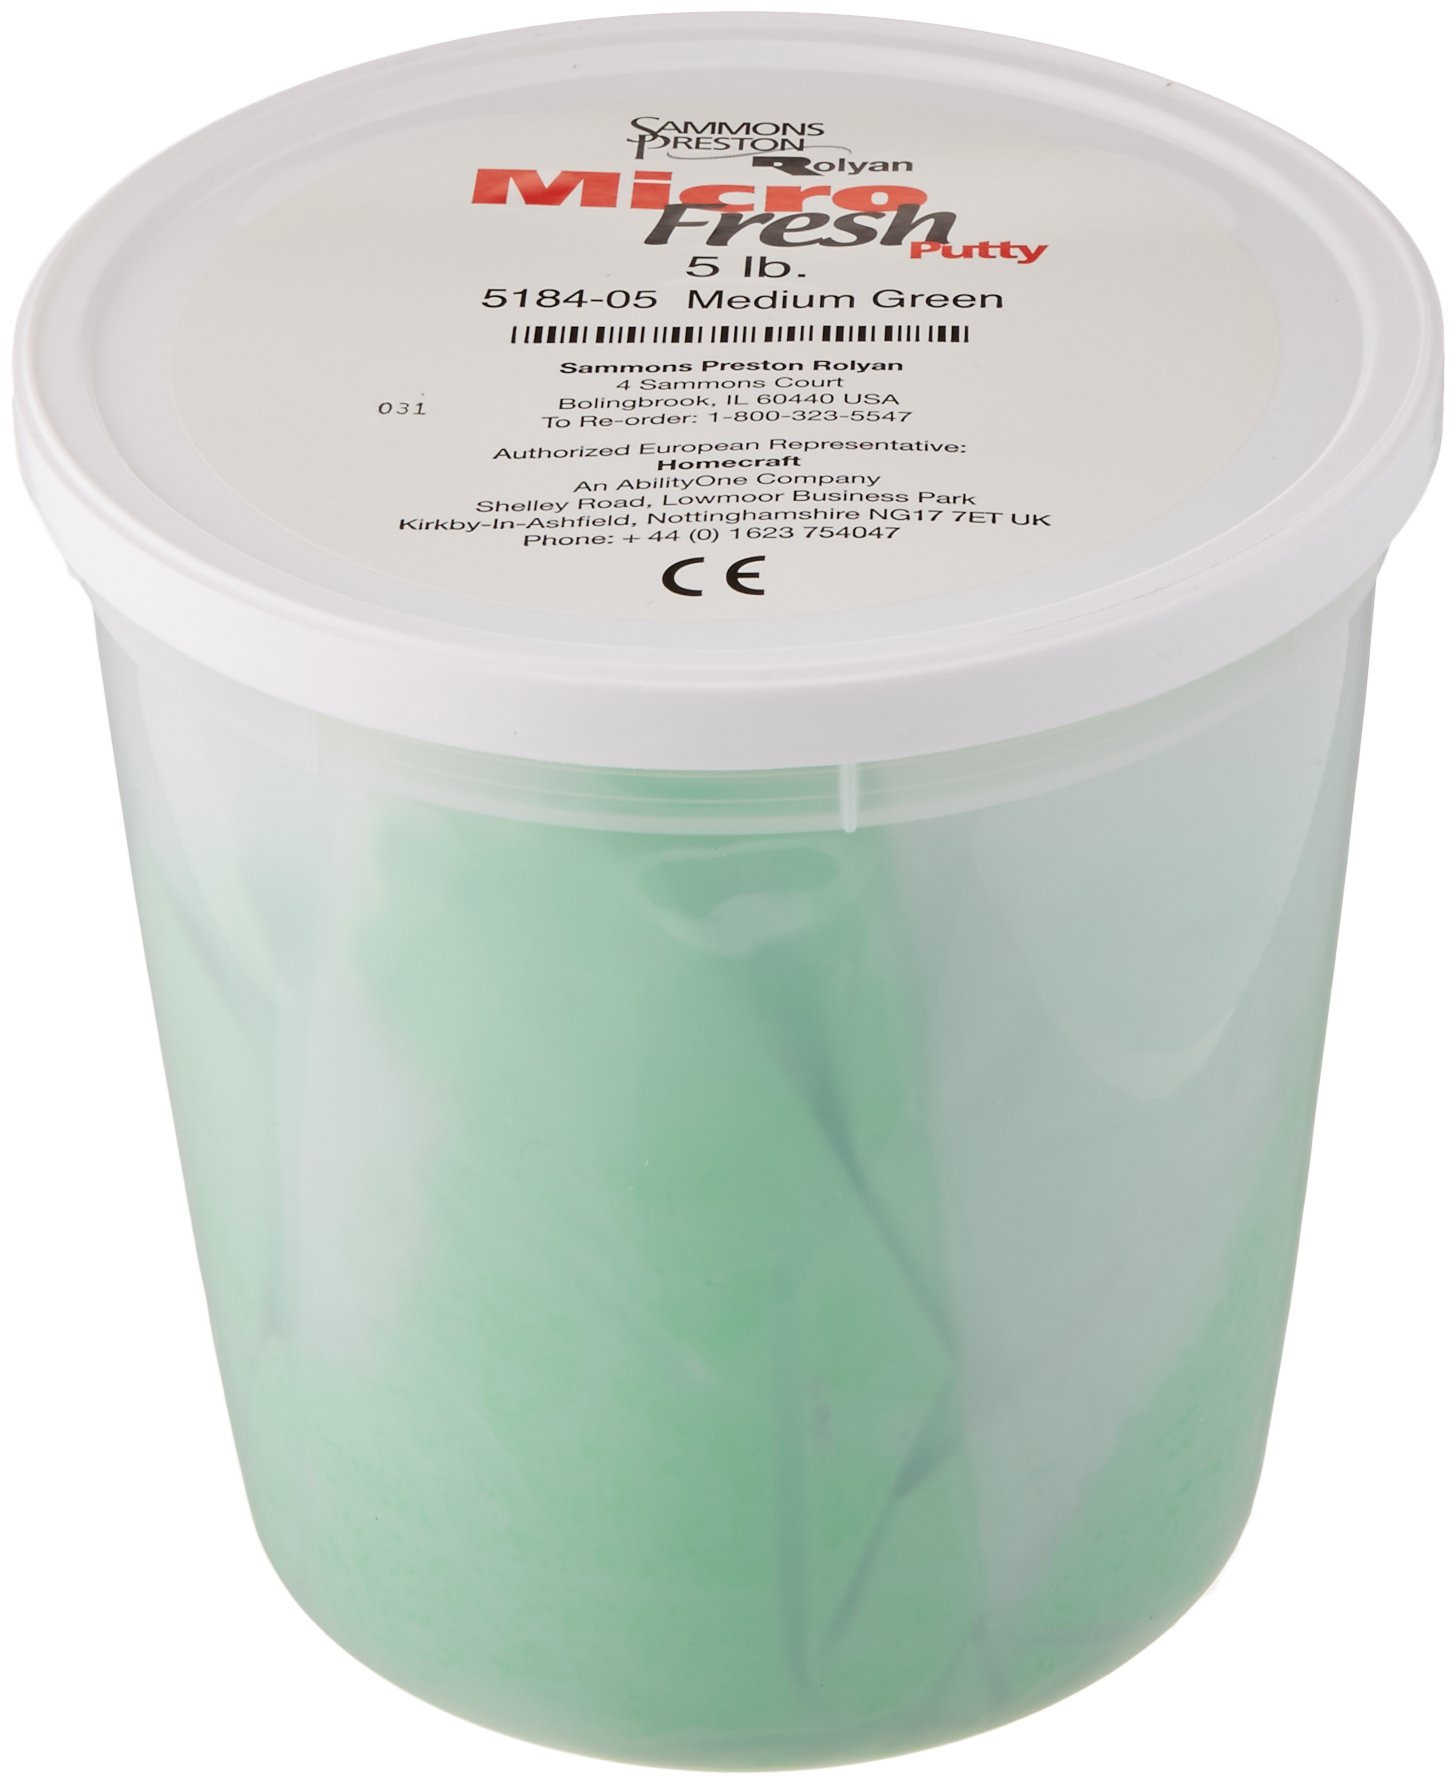 Sammons Preston Micro-Fresh Putty, Antibacterial, Antifungal, and Antimicrobial Therapy Putty for Hands and Feet Exercises, Color Coded Non-Toxic Clay, Medium, Green, 5 Pounds